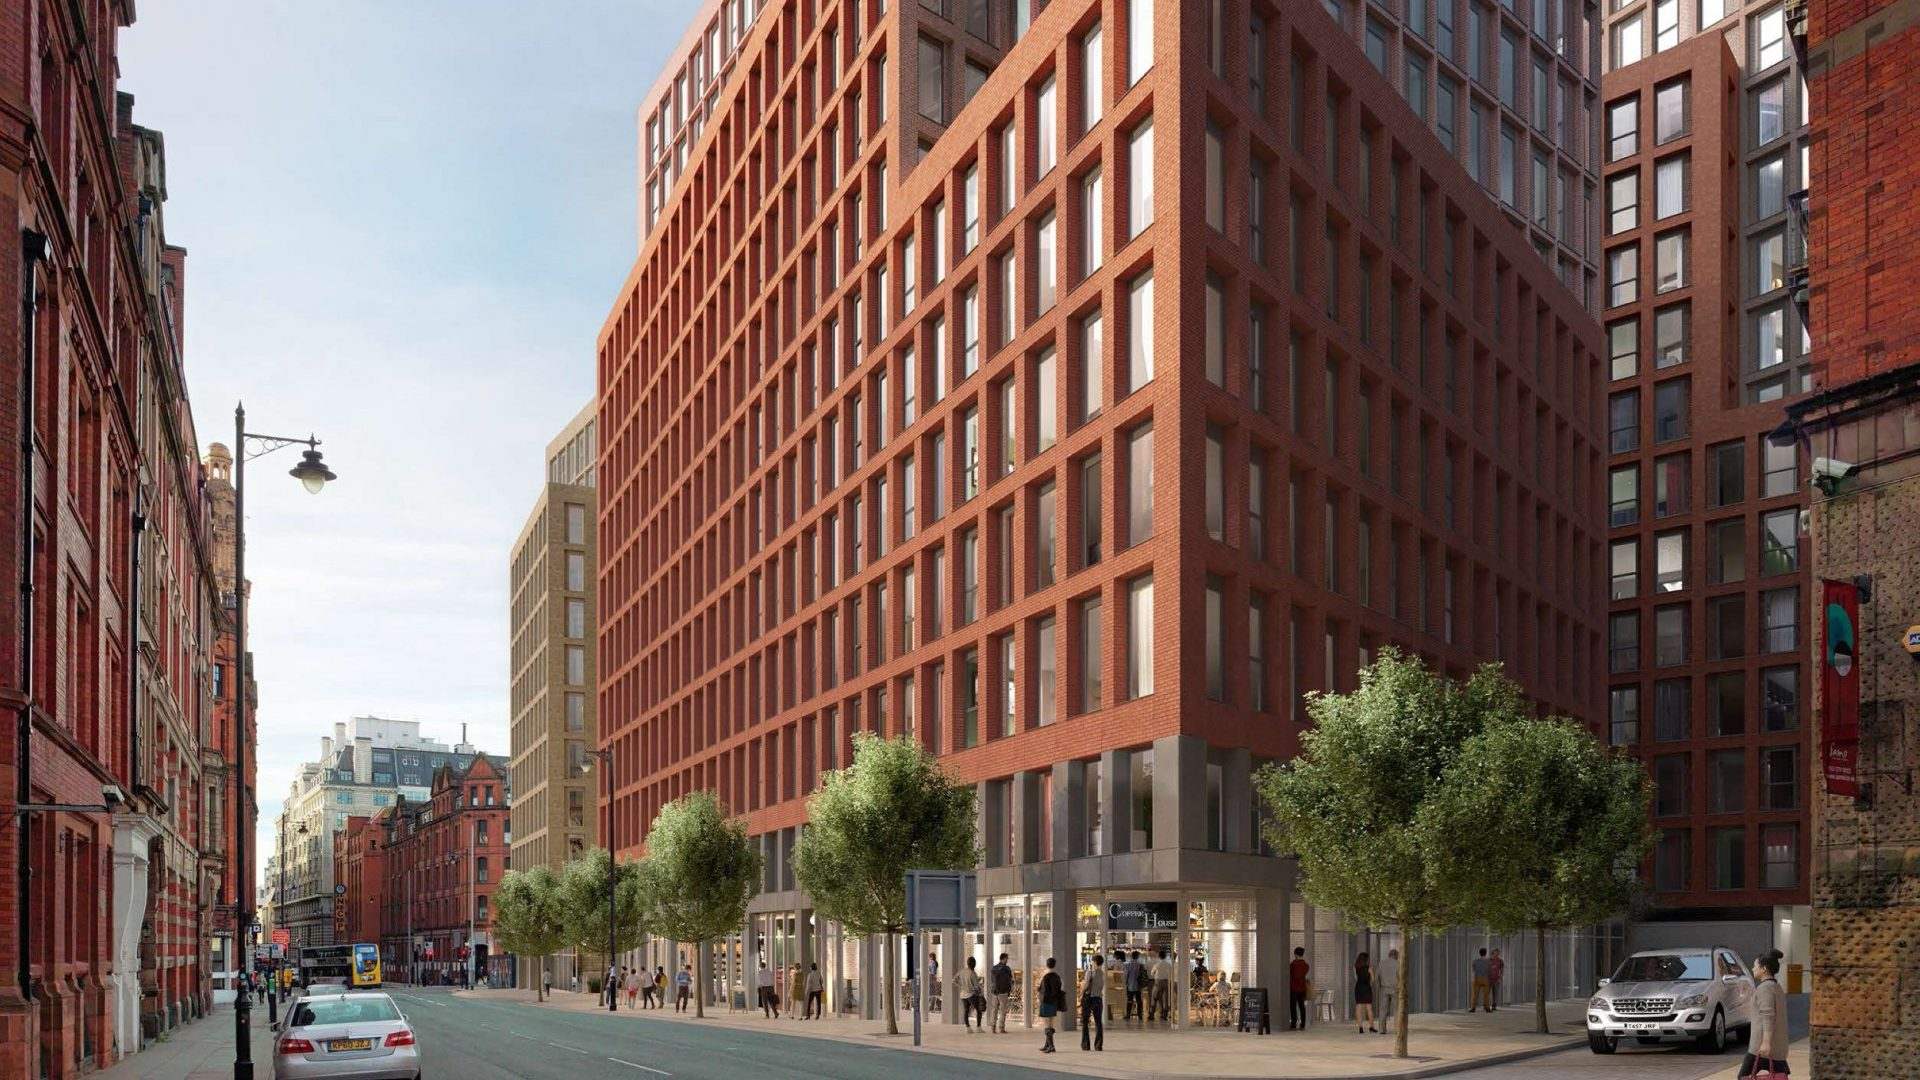 Manchester New Square Project CGI 2